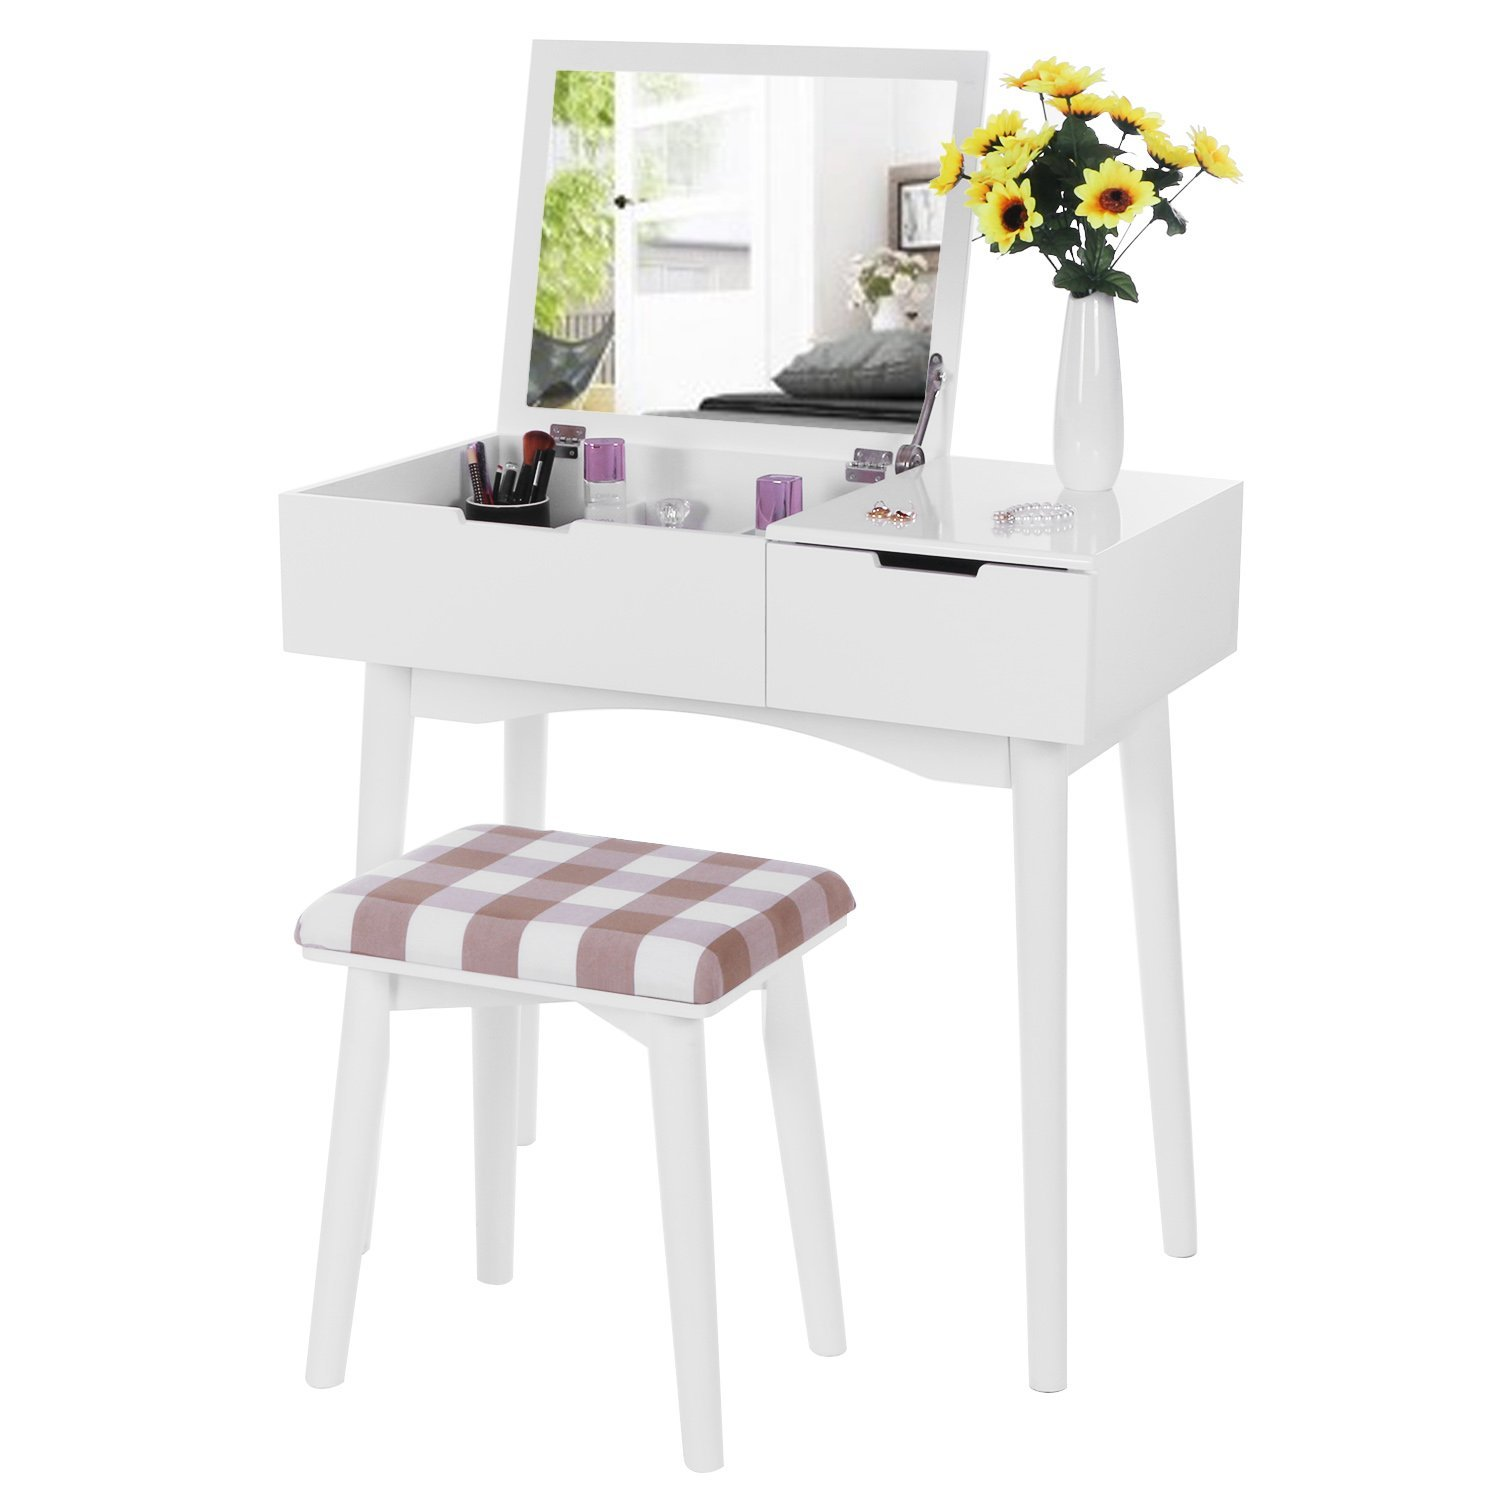 Peachy Buy Joveco Makeup Desk Vanity With Flip Top Mirror With Ncnpc Chair Design For Home Ncnpcorg